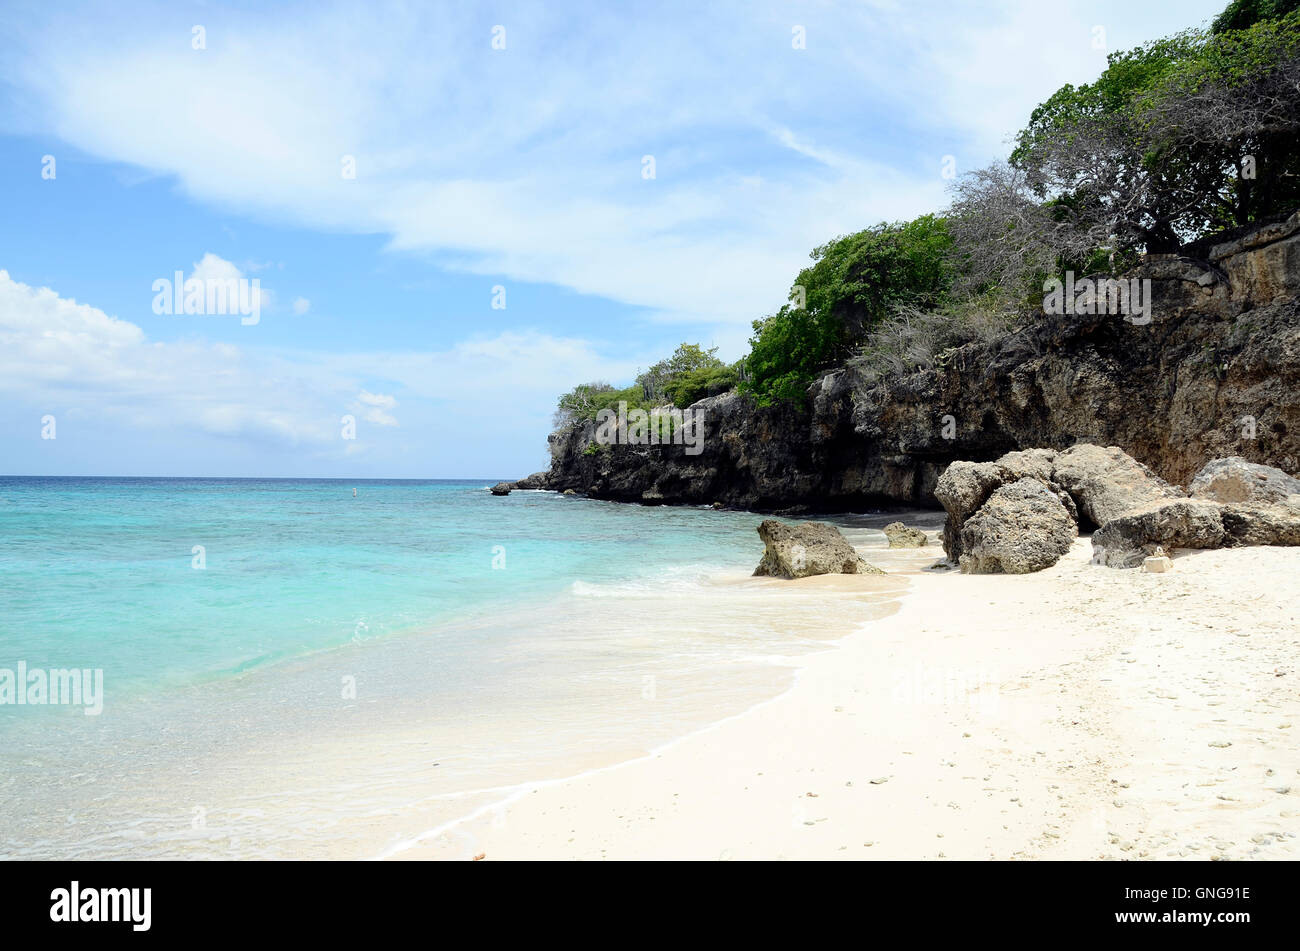 Blue water and white sand of Beach in Curacao island, Caribbean Sea - Stock Image